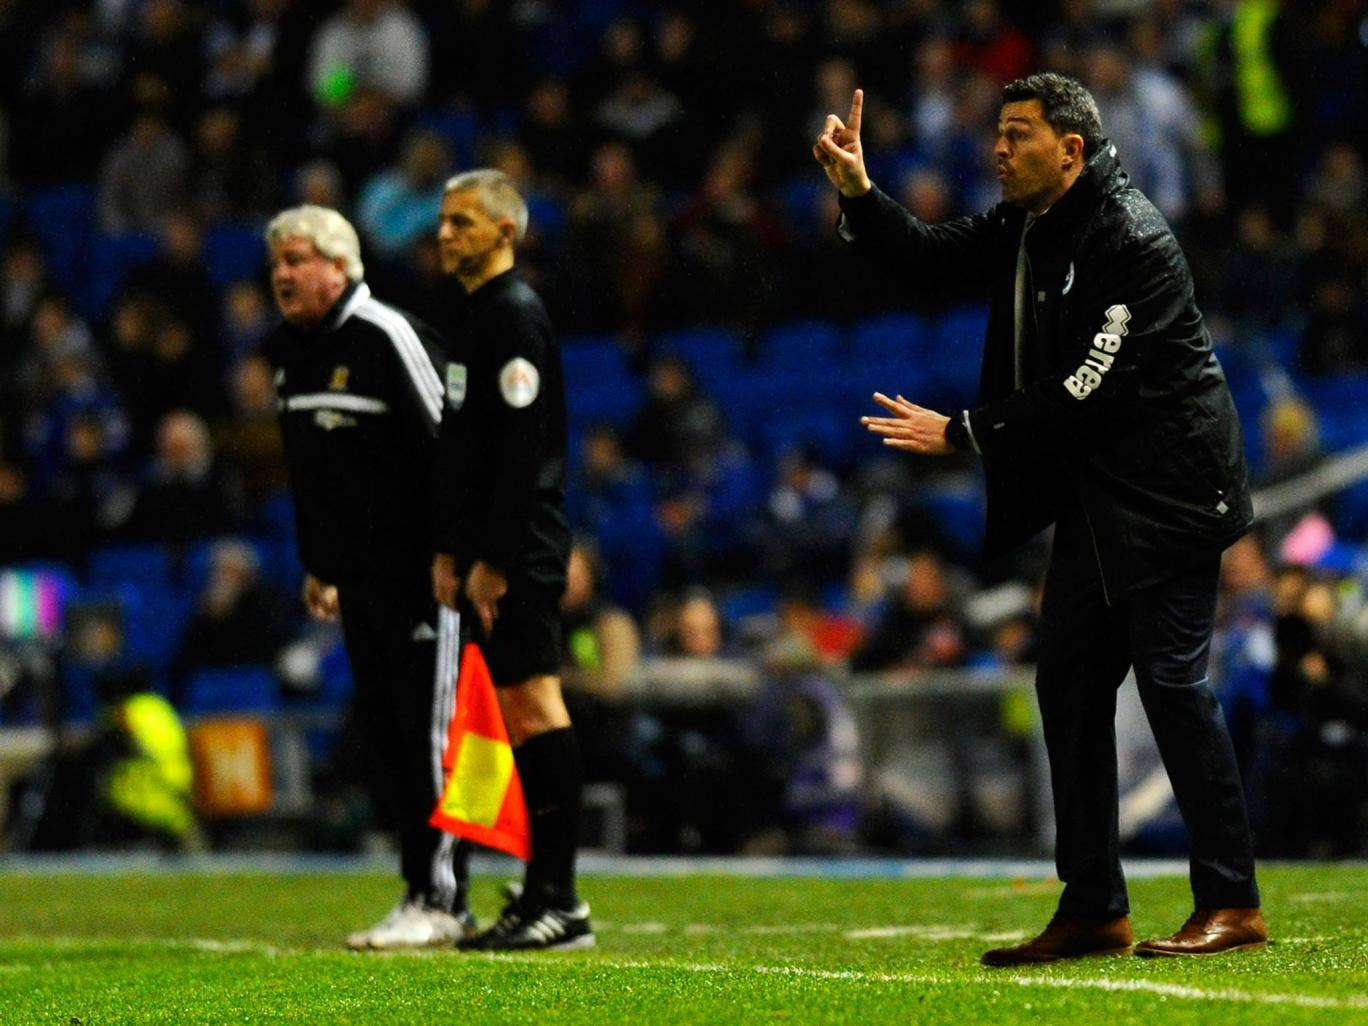 Steve Bruce (L) and Oscar Garcia (R) have hit out at a Uefa regulation that means their sides will play two matches in two days